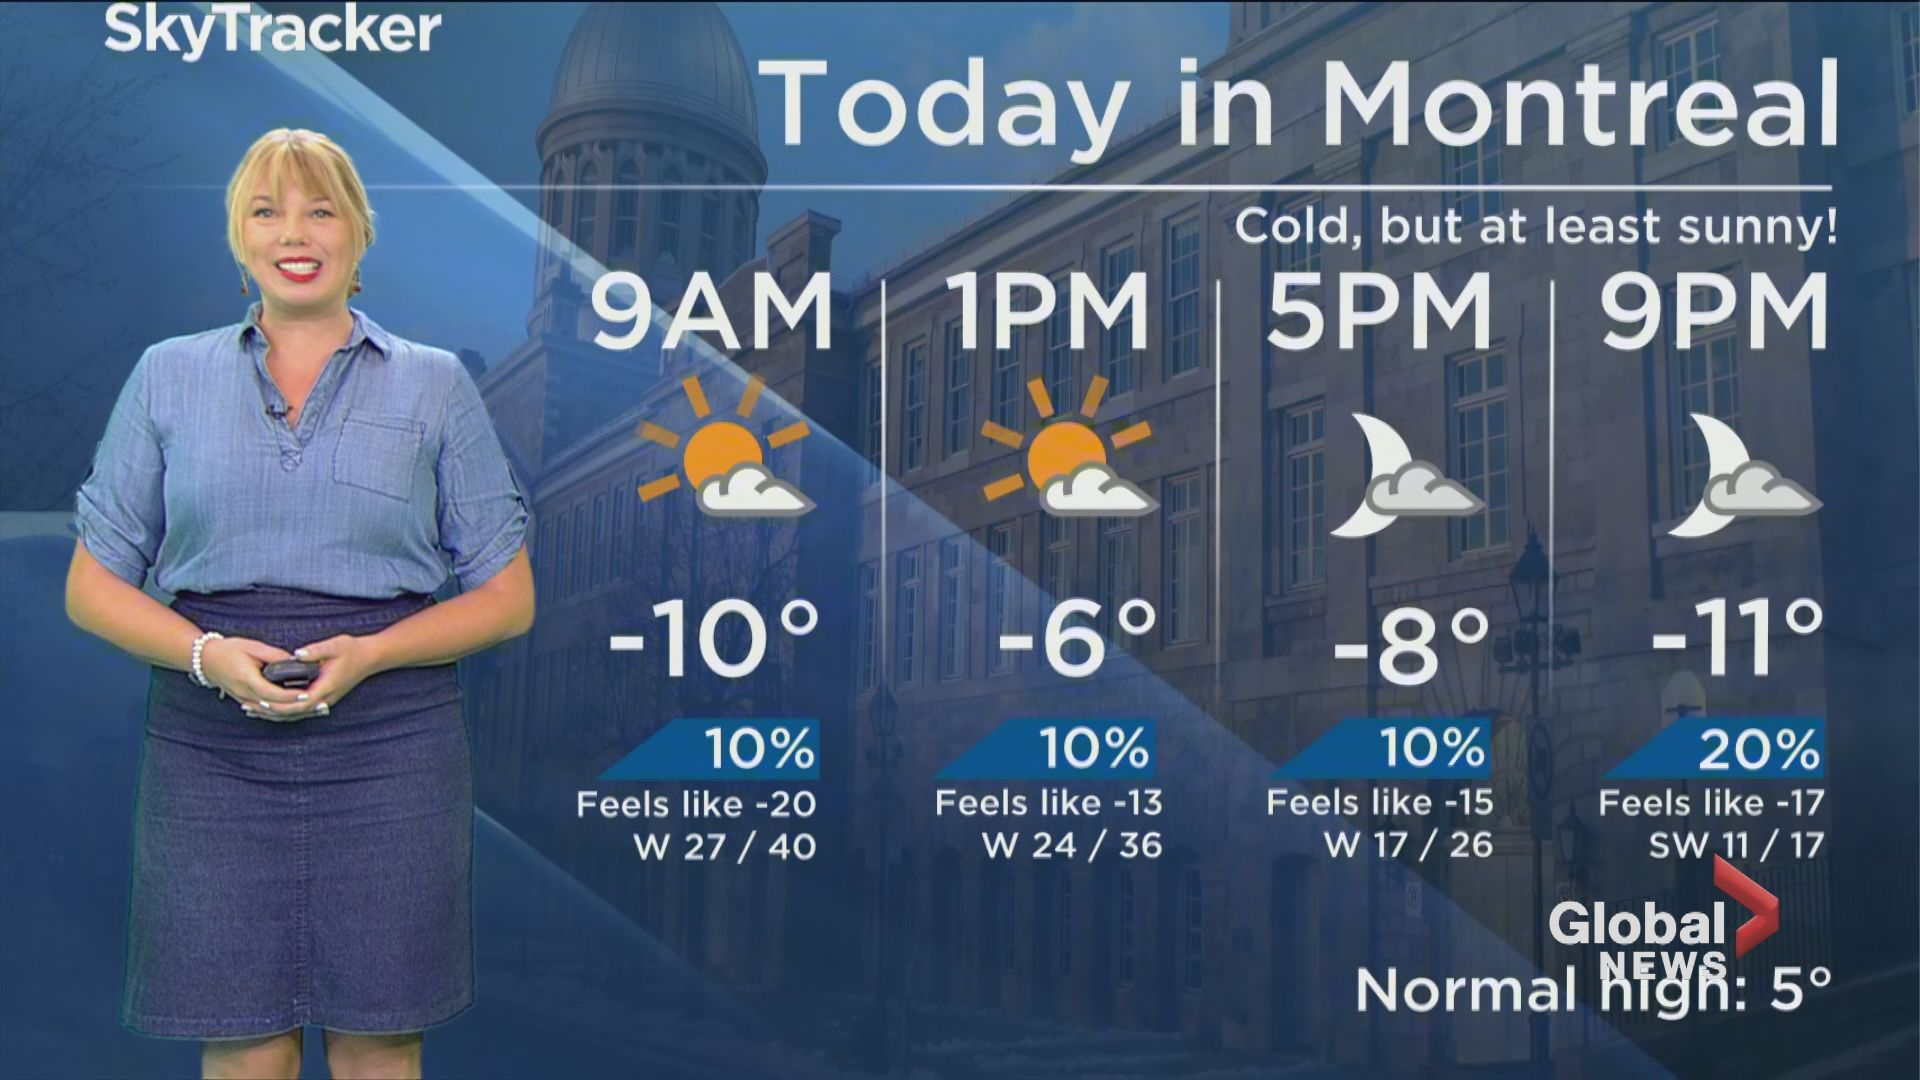 Global News Morning weather forecast: Wednesday November 13, 2019